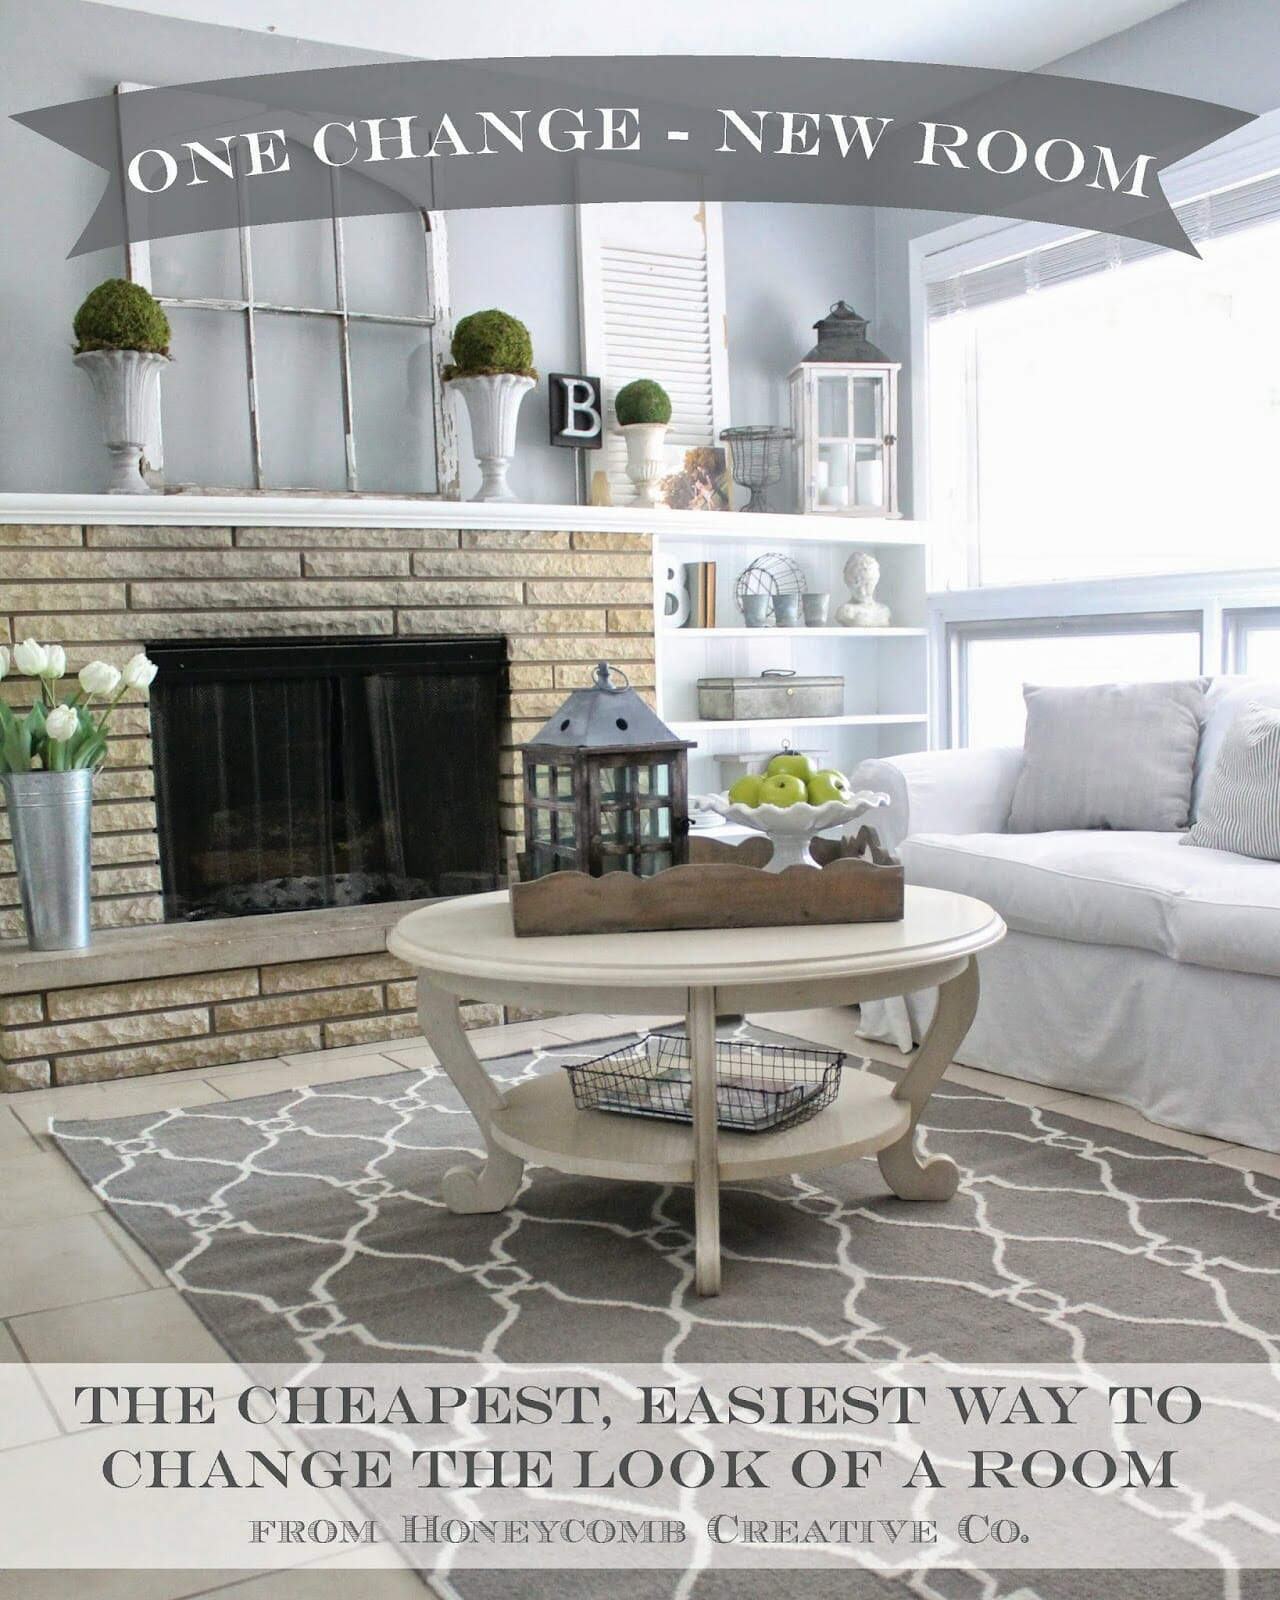 One Change – New Room: The Cheapest, Easiest Way to Change the Look of a Room